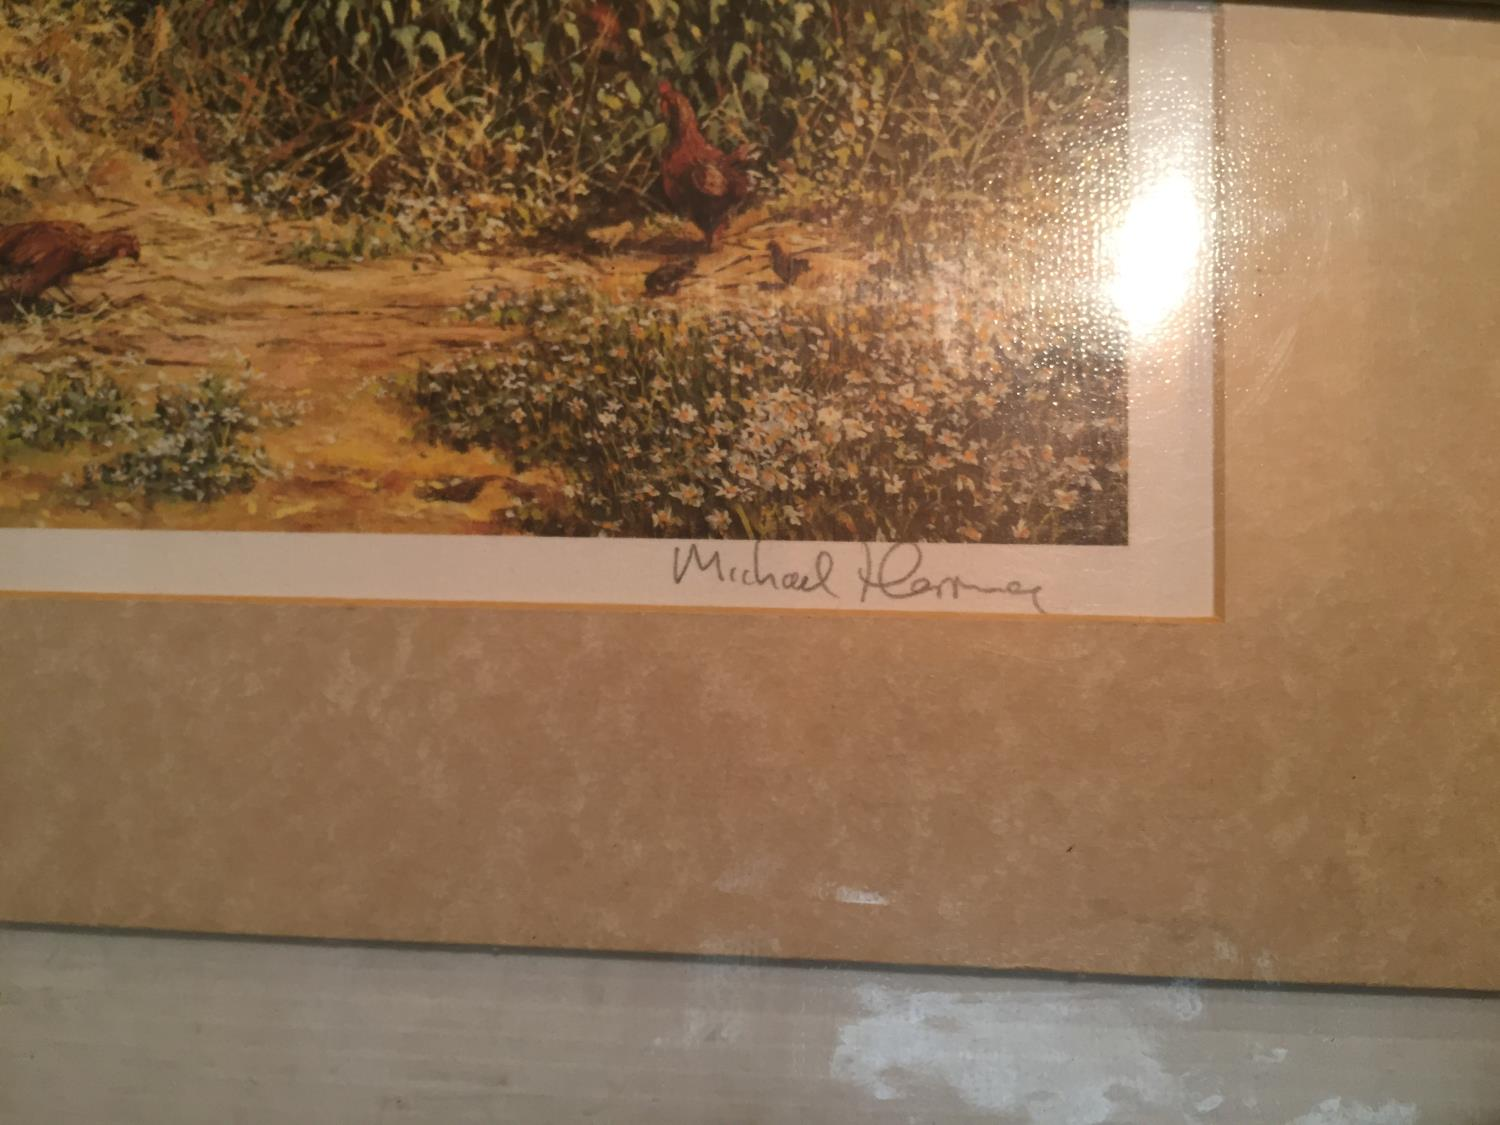 THREE MOUNTED SIGNED PRINTS OF FARM SCENES IN A HARDBACK PROTECTIVE FOLDER - Image 9 of 12